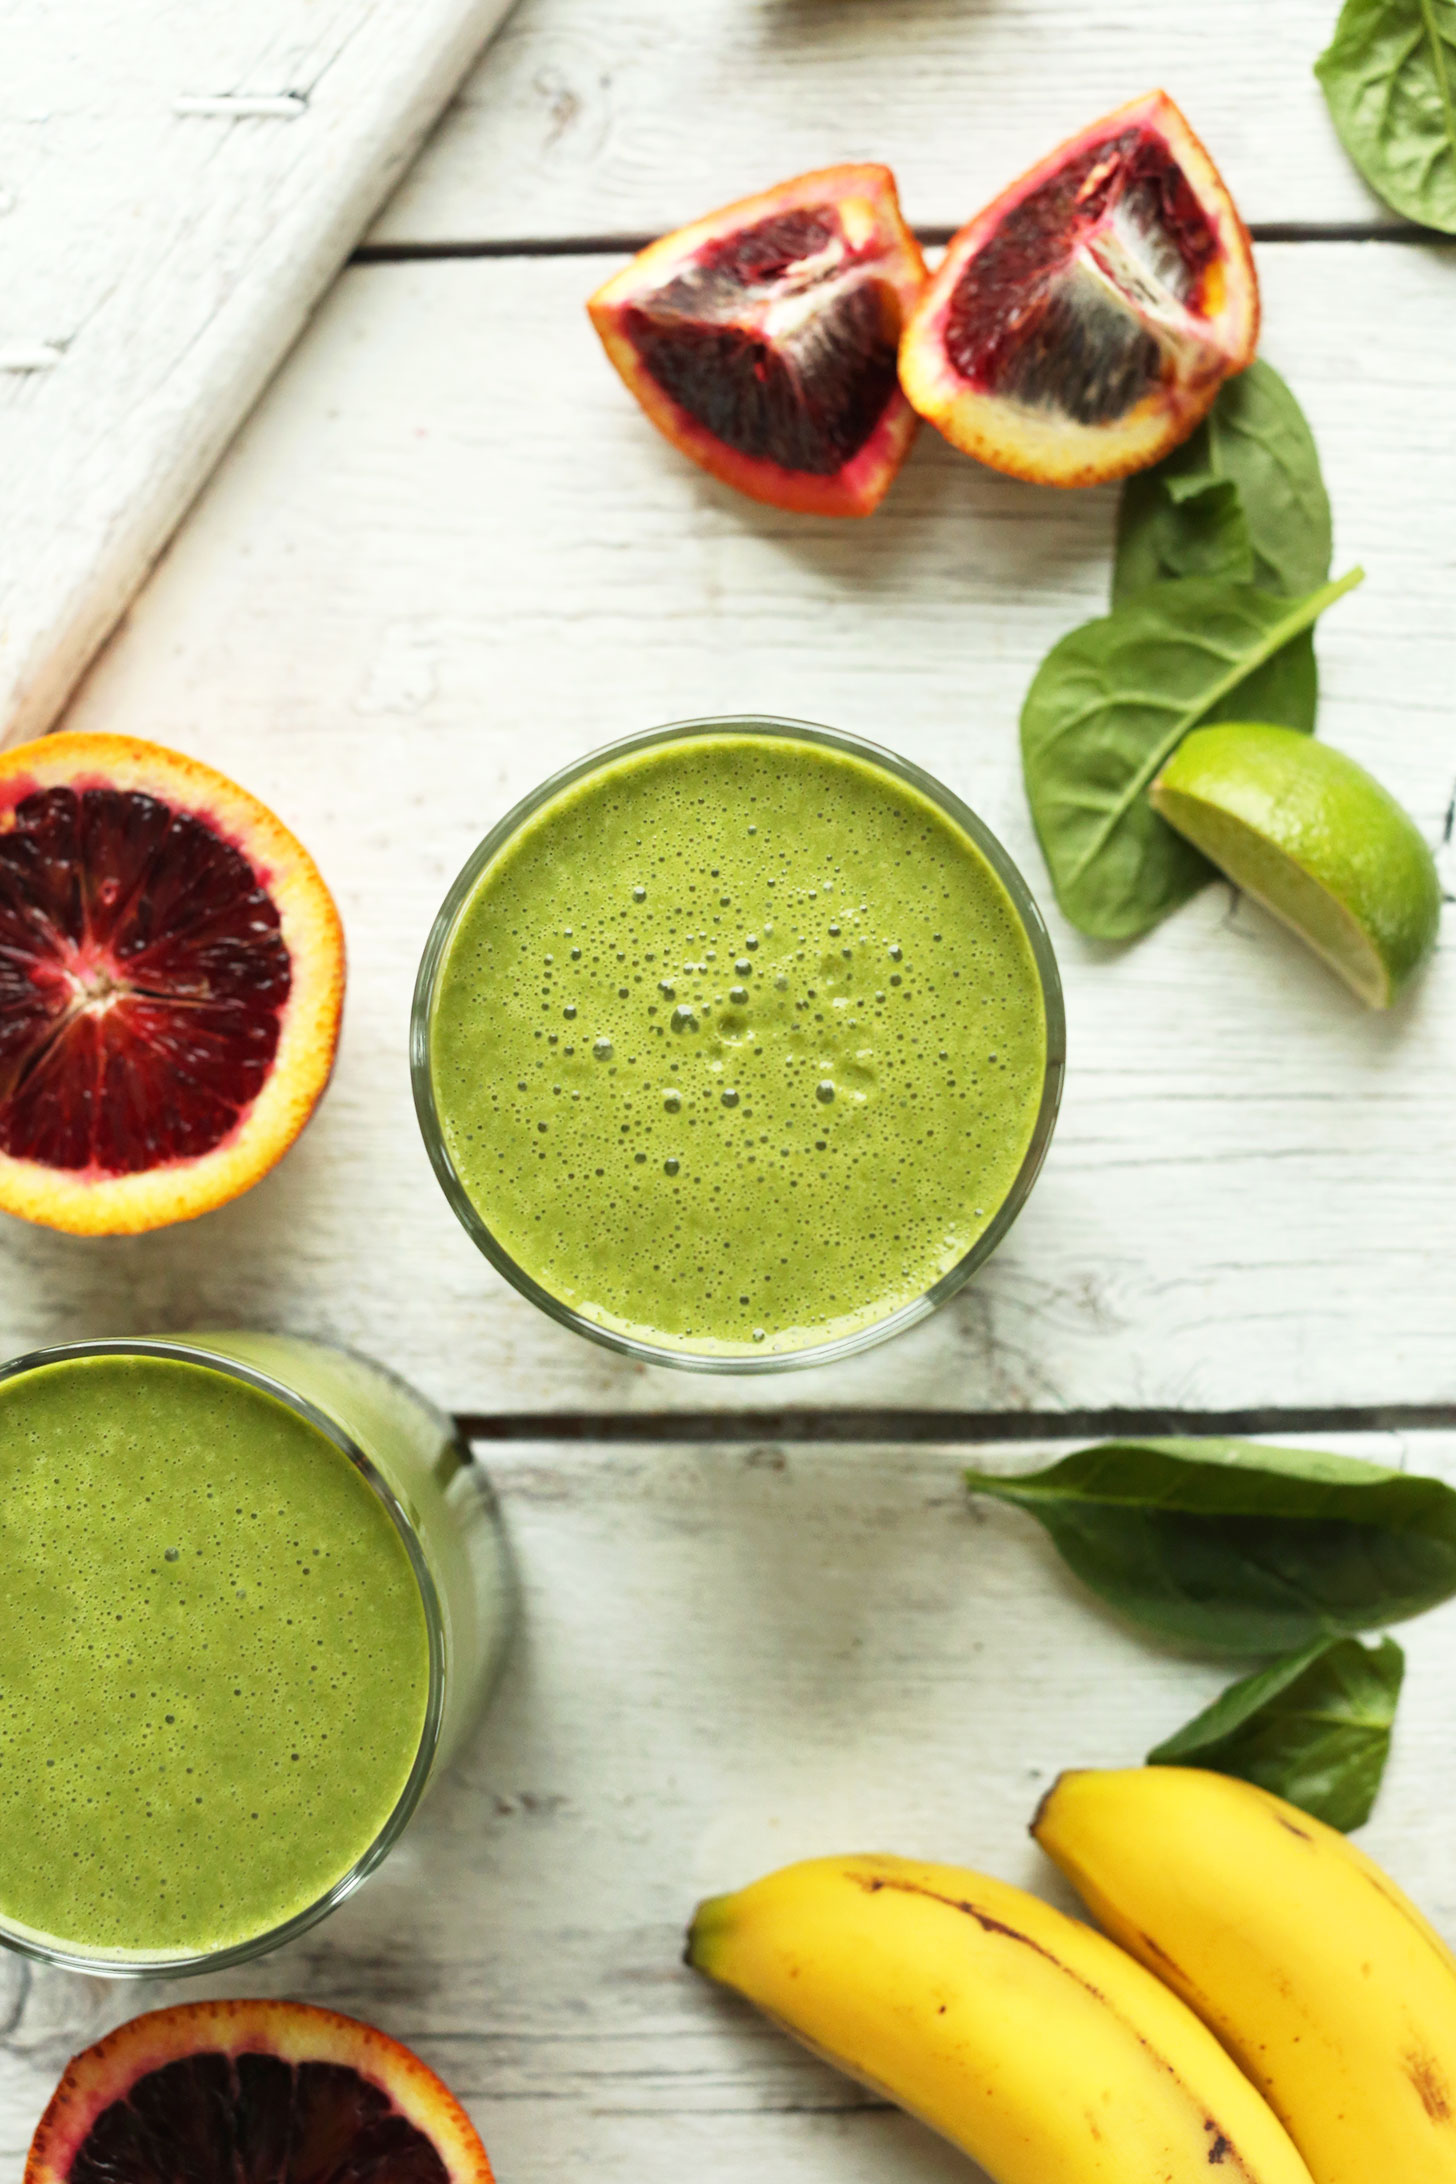 Glasses of our vegan Blood Orange Green Smoothie surrounded by key ingredients such as banana, blood orange, and spinach